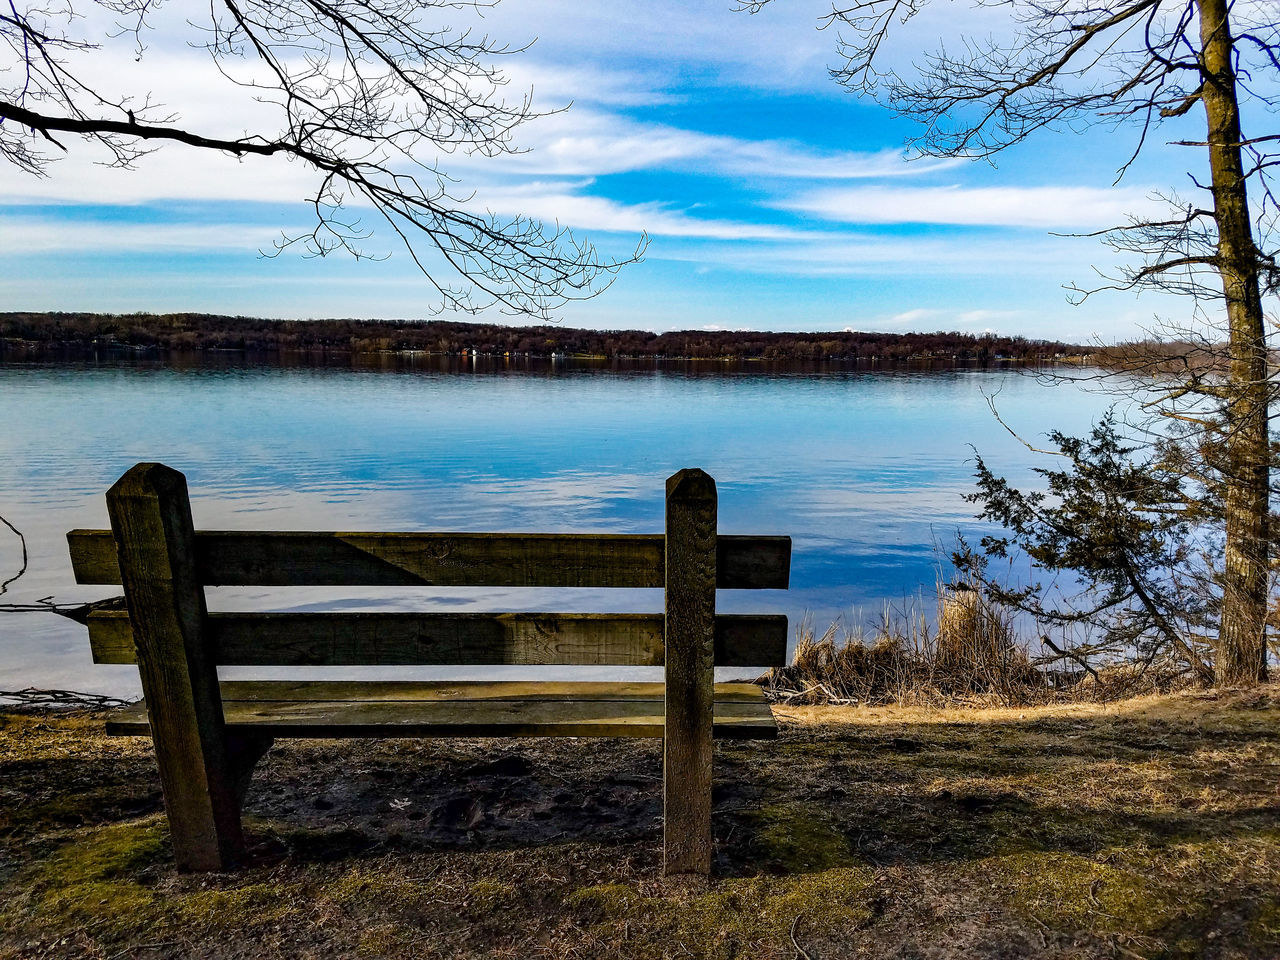 Water Sky Nature Beauty In Nature Outdoors Lake No People Day Scenics Bench Wooden Bench Growth ForestGrass Trail Springtime Spring March 2017 Minnesota Koronis Regional Park Park Lake View Lake Koronis Freshness Explore